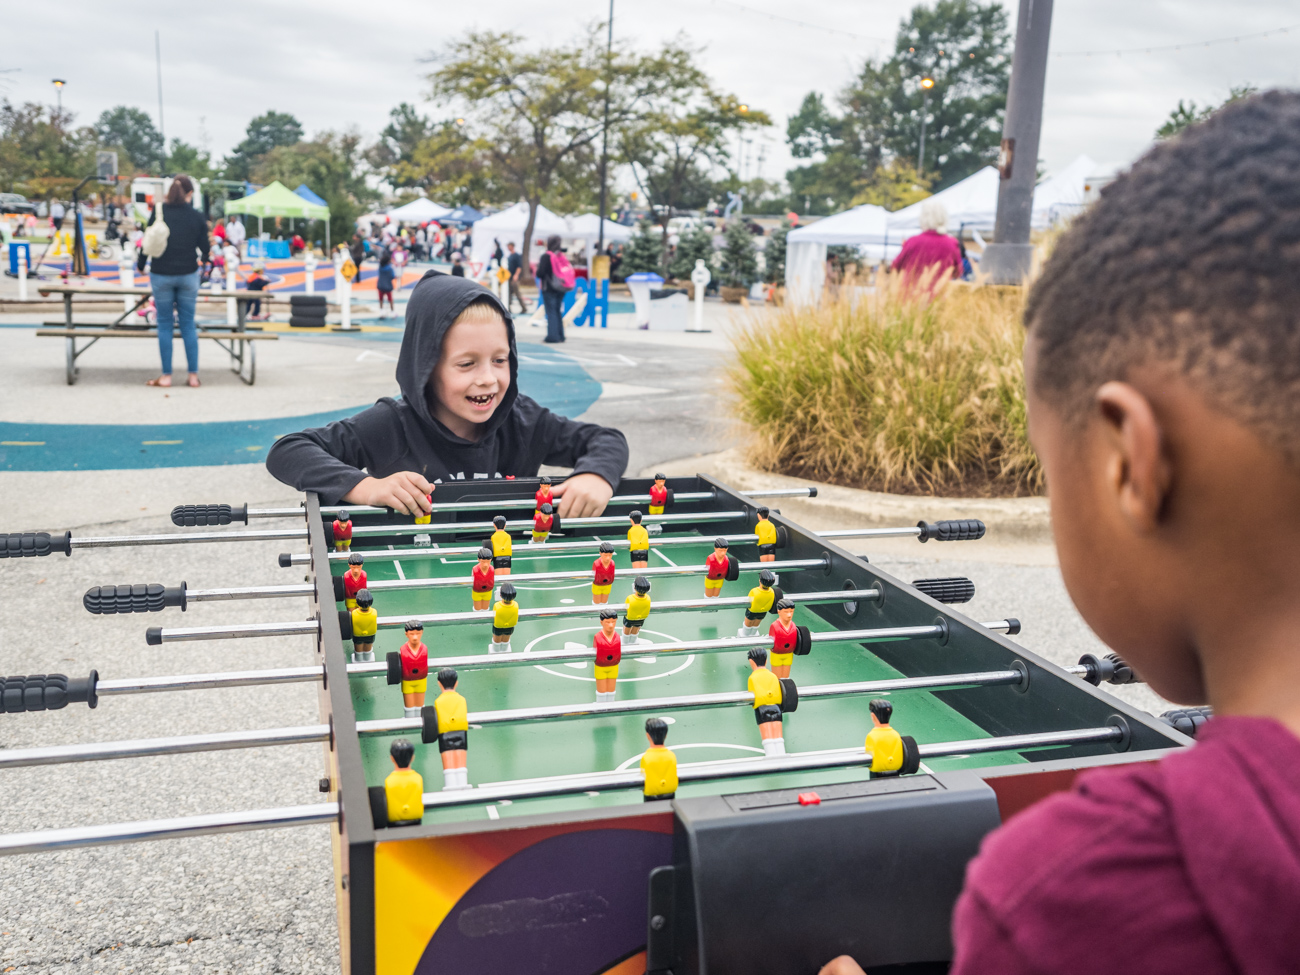 Childredn playing Foosball at Burtonsville Placemaking Festival